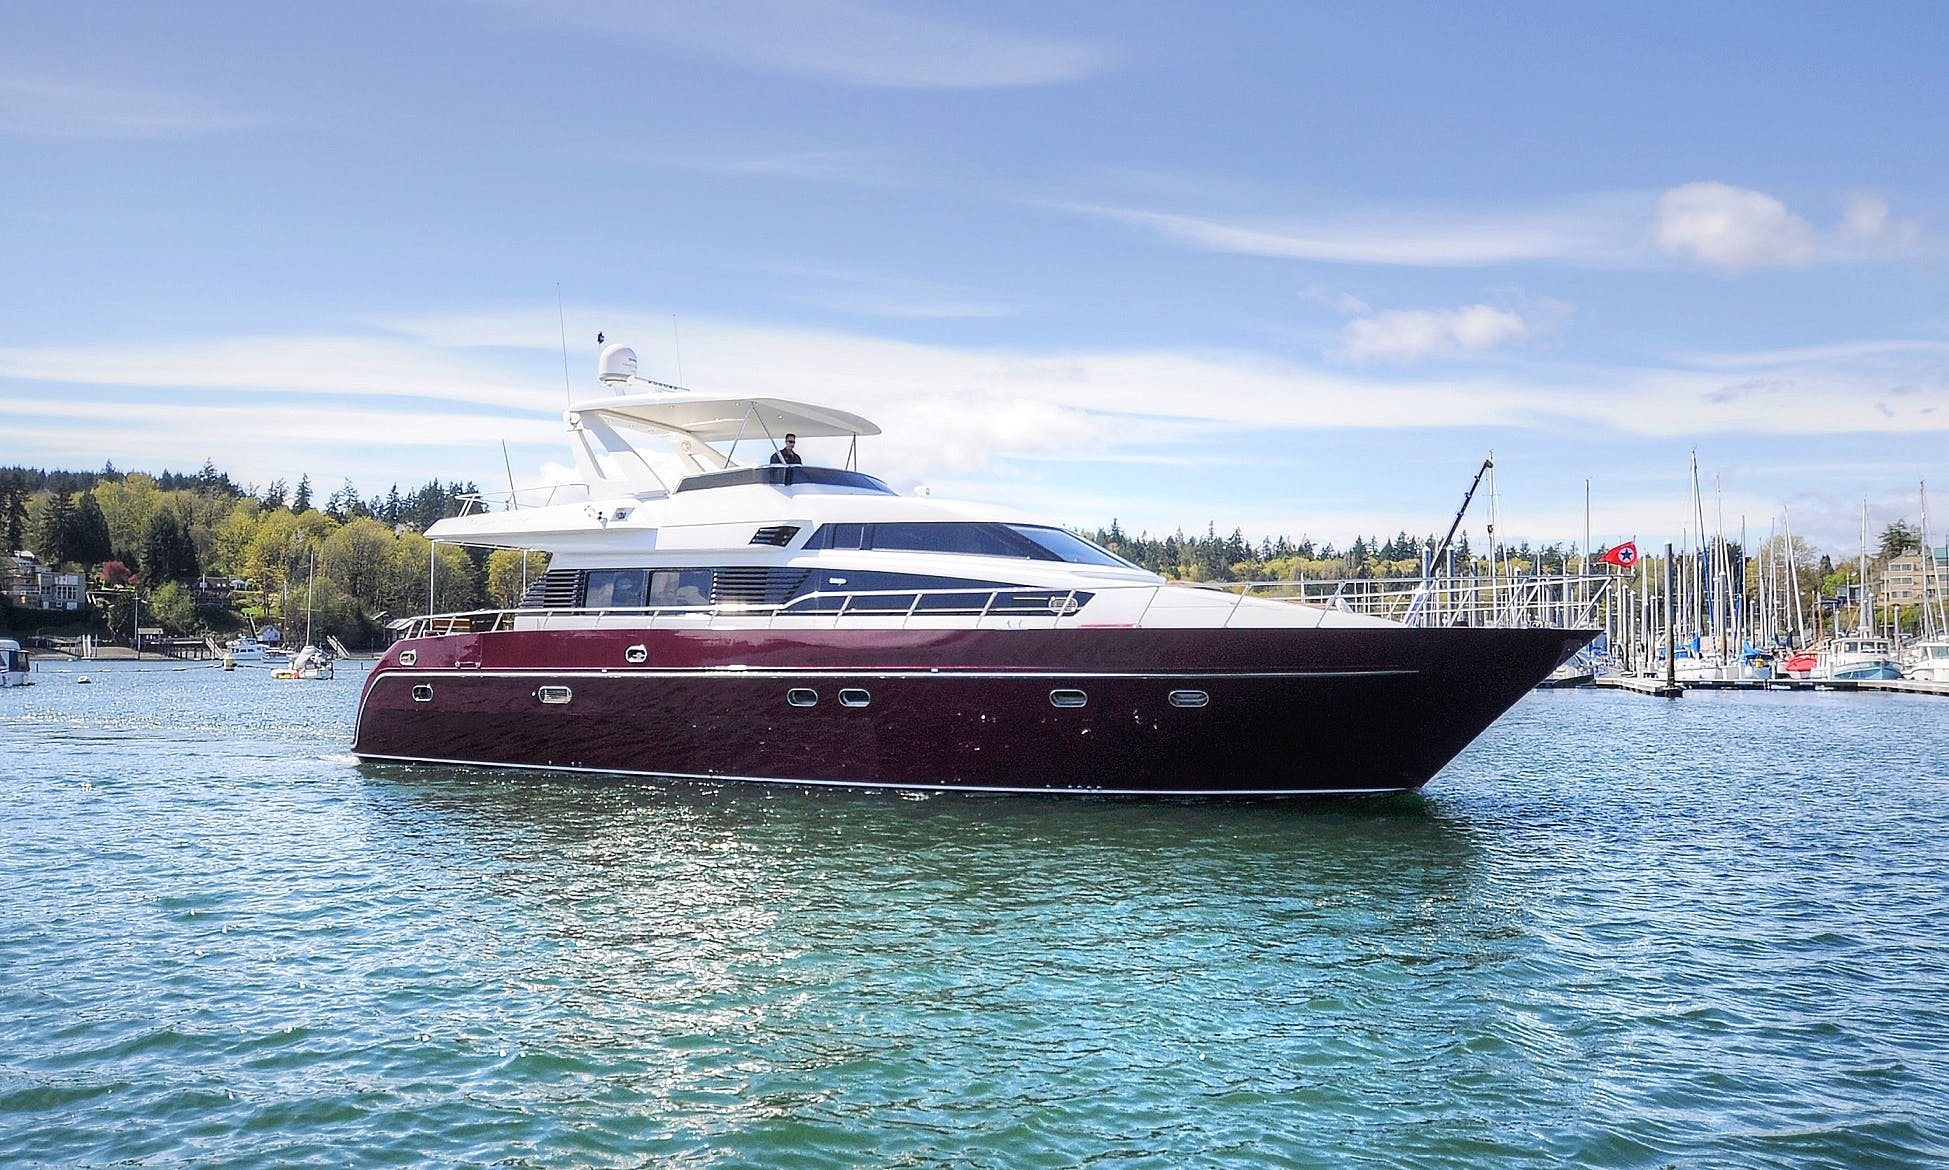 66' Monte Fino Luxury Italian Yacht in Seattle - Book now for Opening Day, 4th of July & Summer Cruising